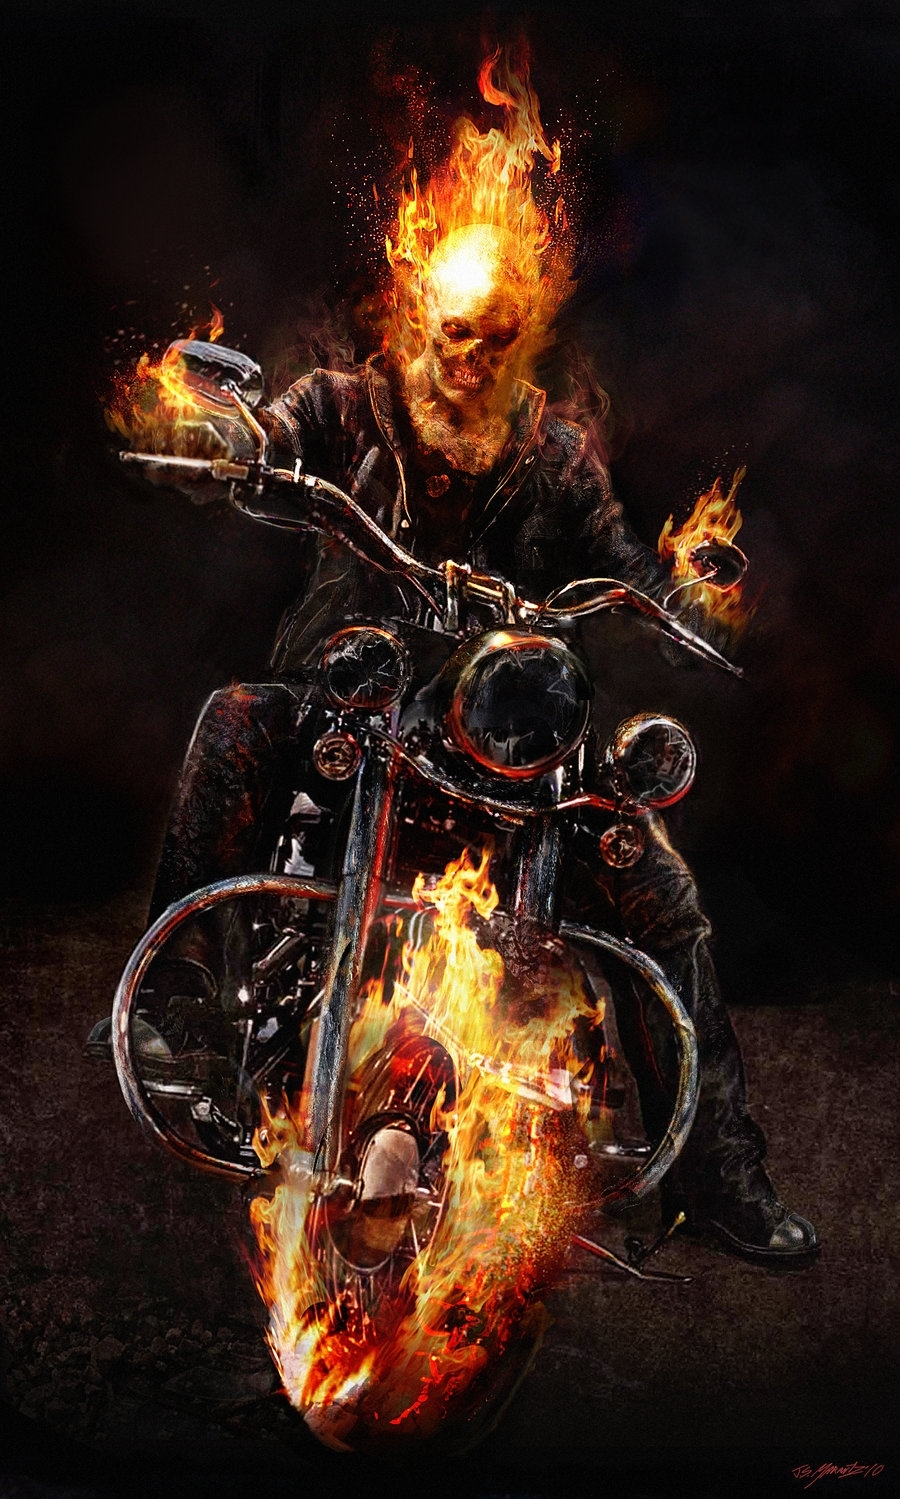 ghostrider | explore ghostrider on deviantart